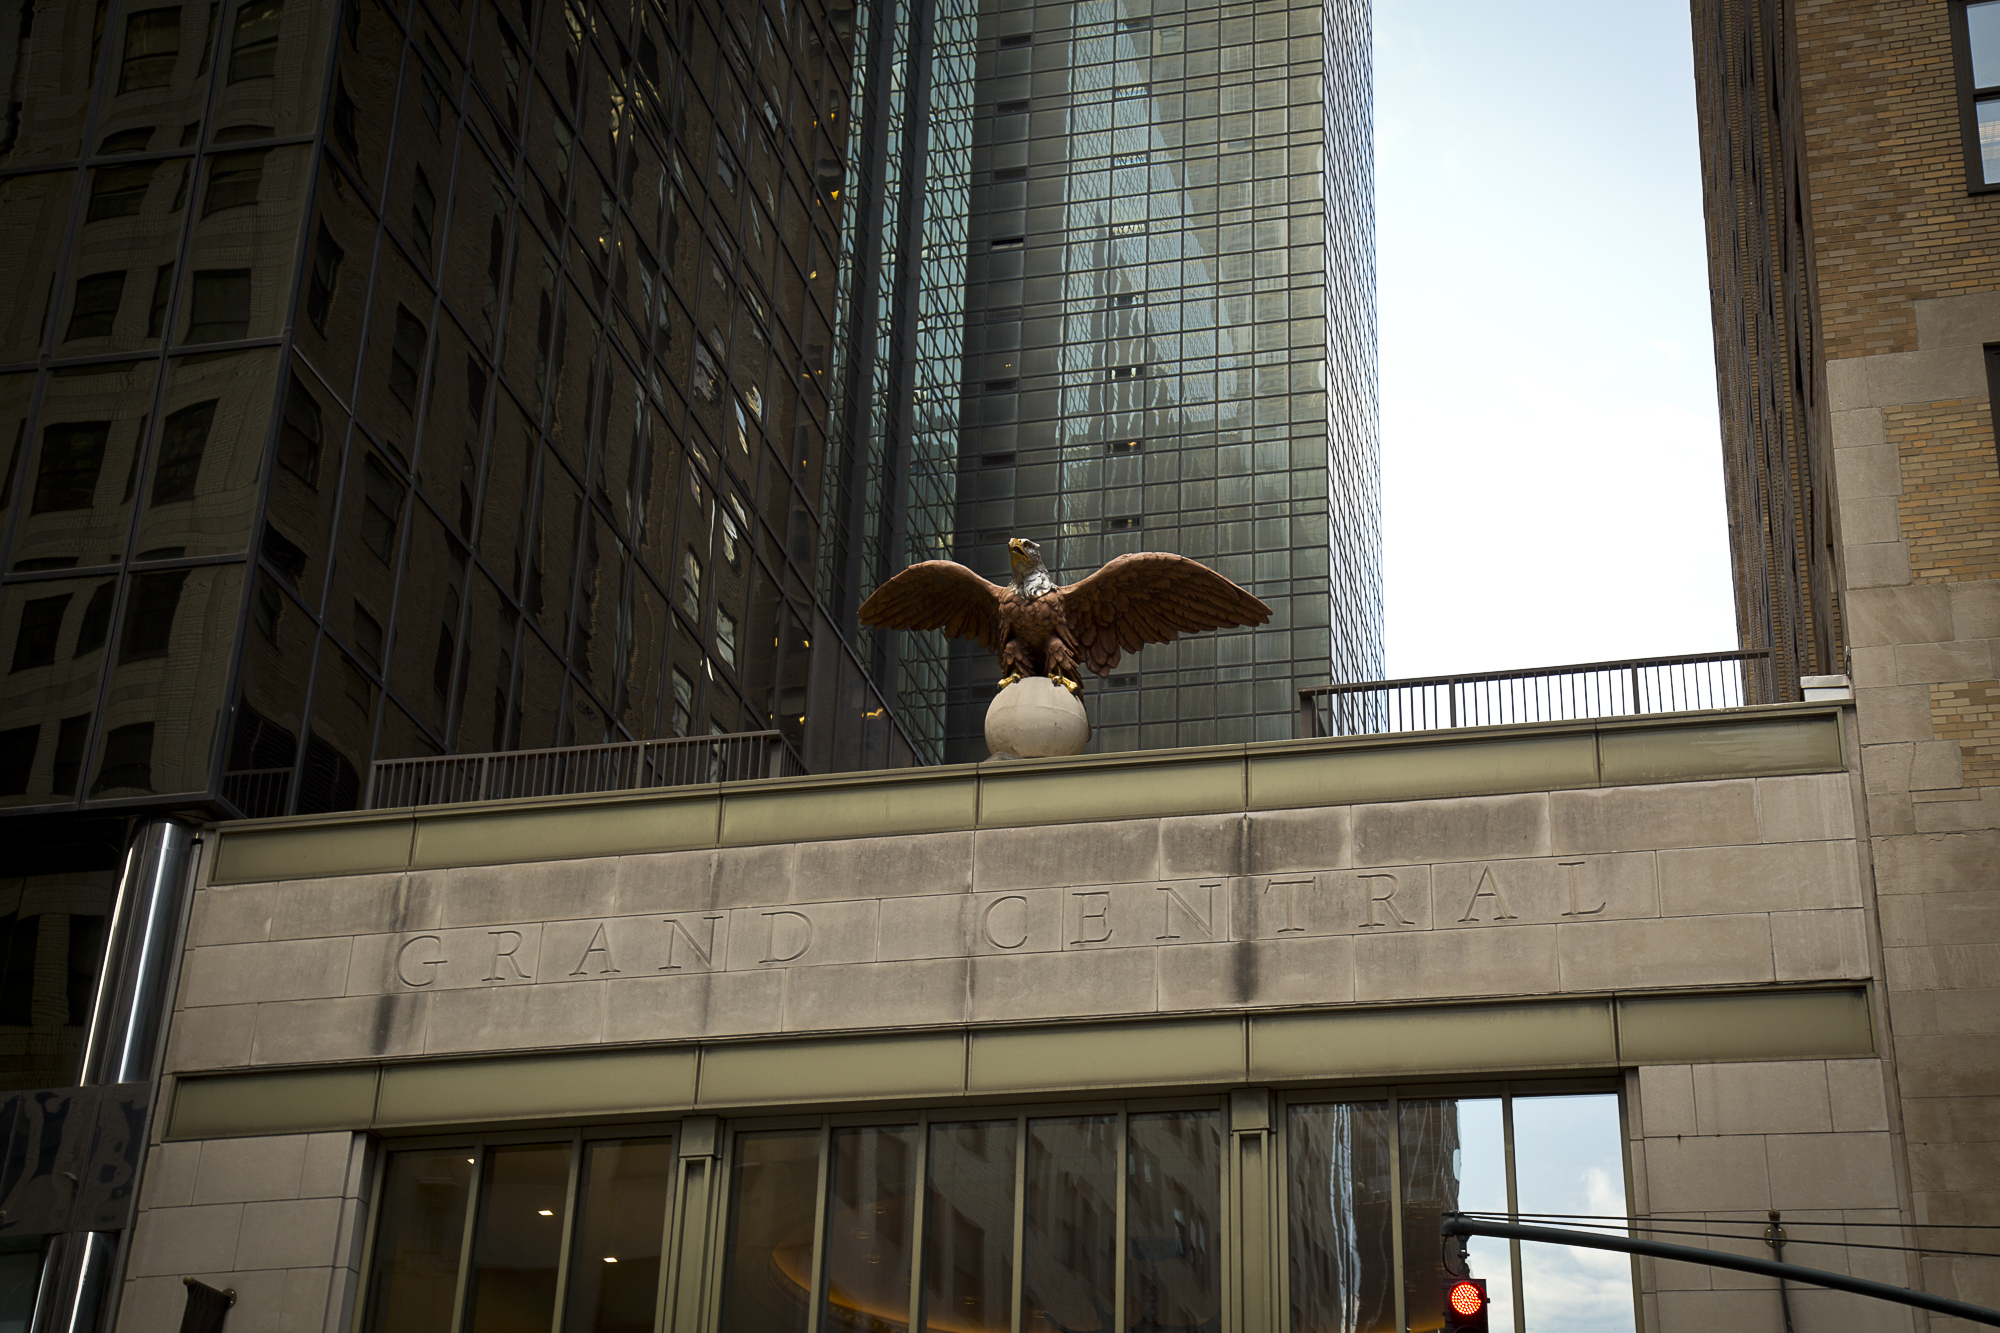 One of the original Grand Central Eagles, which has returned to the station.